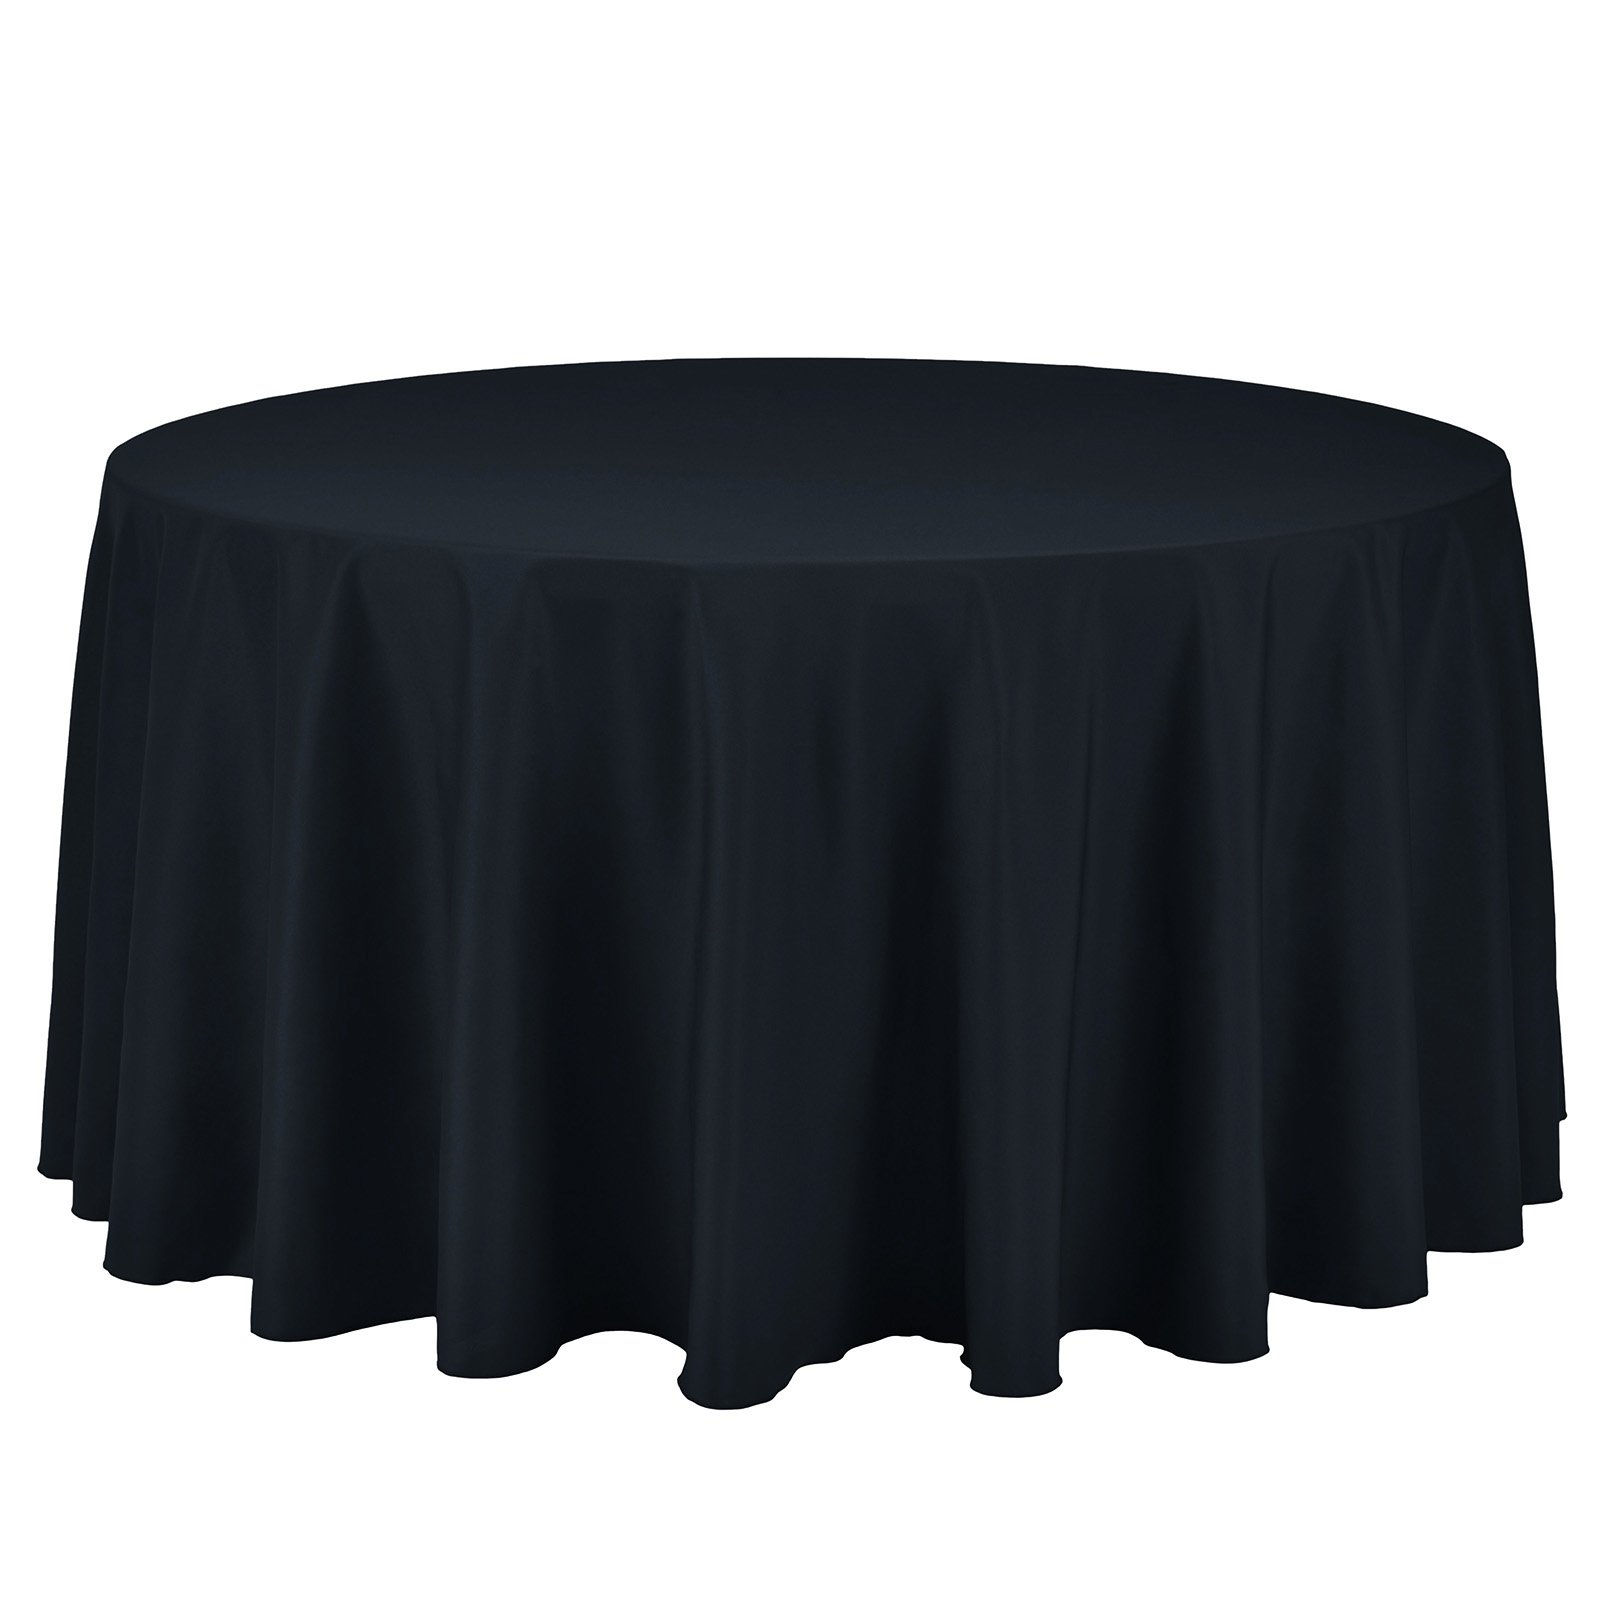 Remedios Round Tablecloth Solid Color Polyester Table Cloth for Bridal Shower Wedding Table – Wrinkle Free Dinner Tablecloth for Restaurant Party Banquet (Navy Blue, 120 inch)